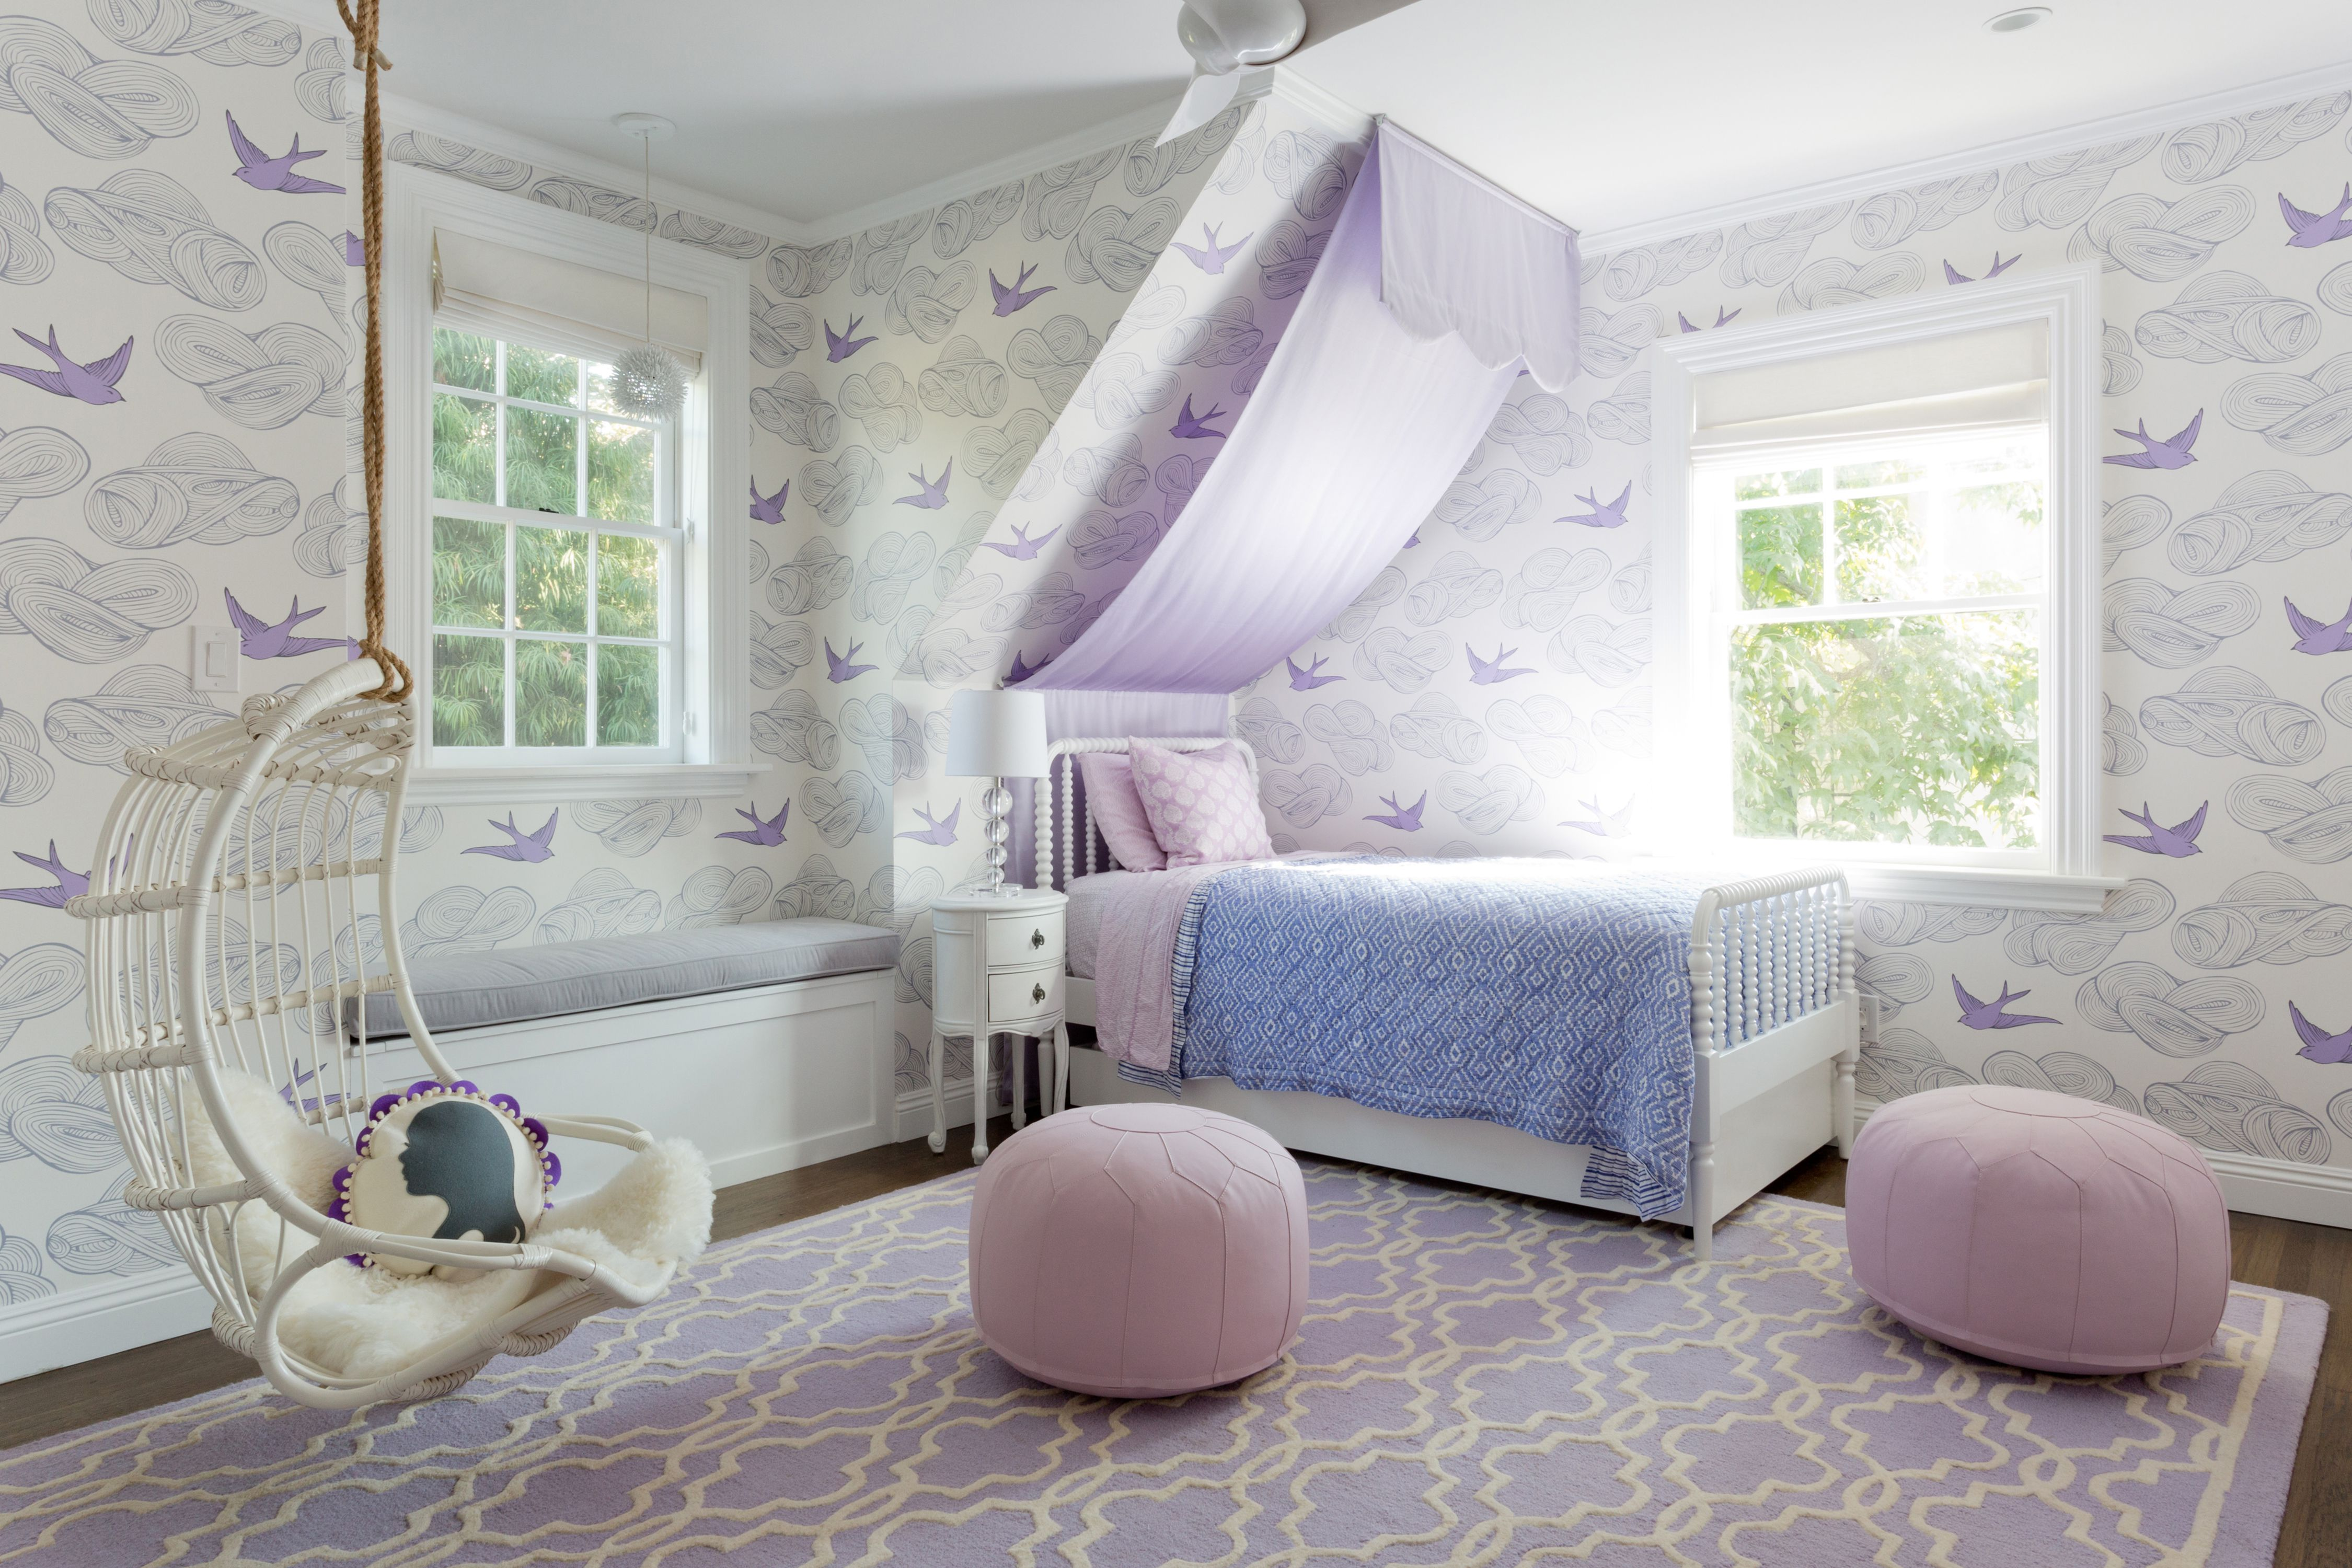 21 Beautiful Girls' Rooms With Canopy Beds on Pretty Rooms For Teenage Girl  id=75426